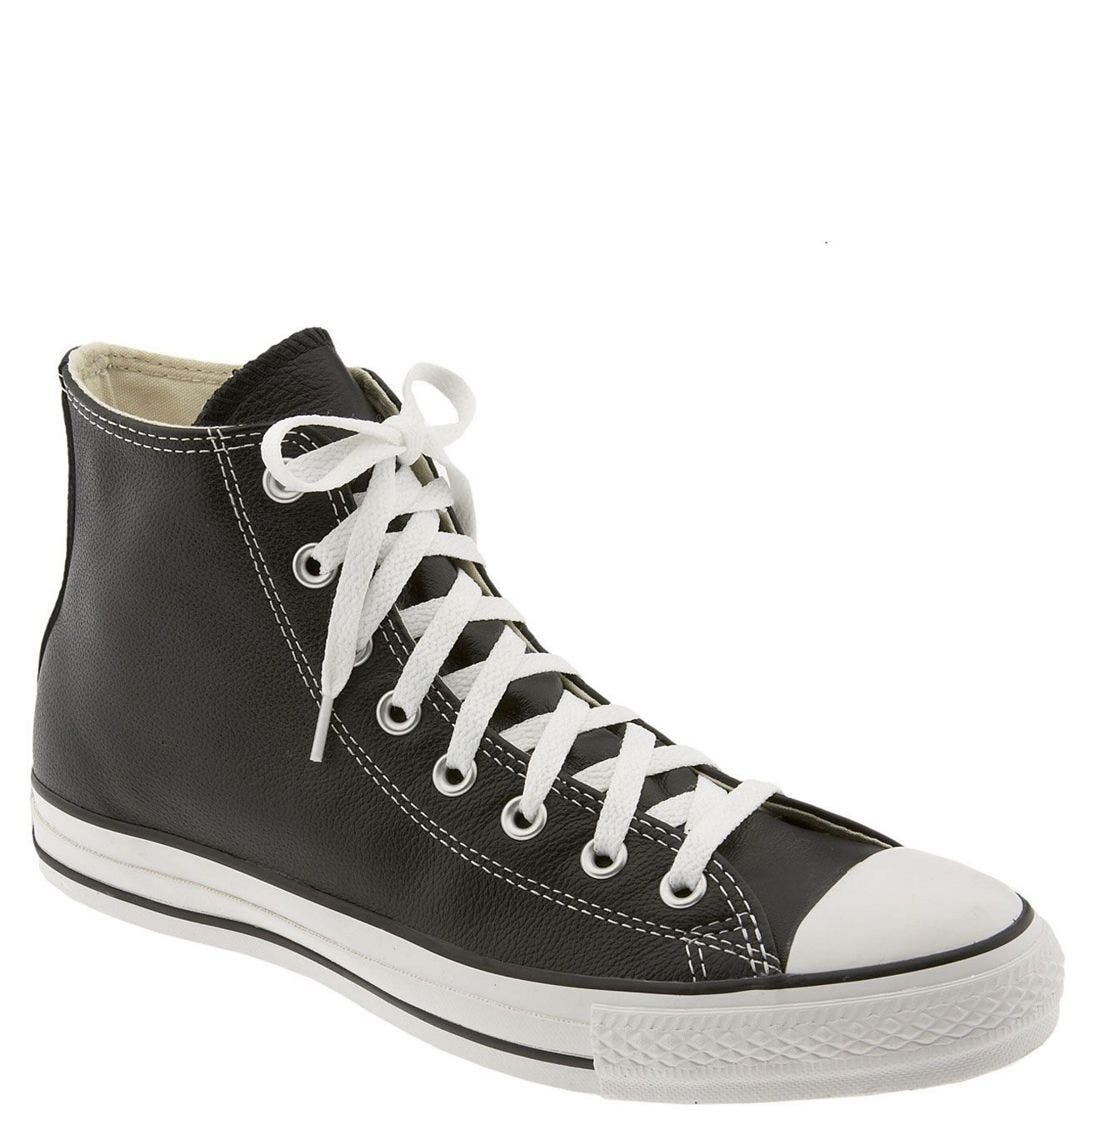 Main Image - Converse Chuck Taylor® All Star® Leather High Top Sneaker (Men)